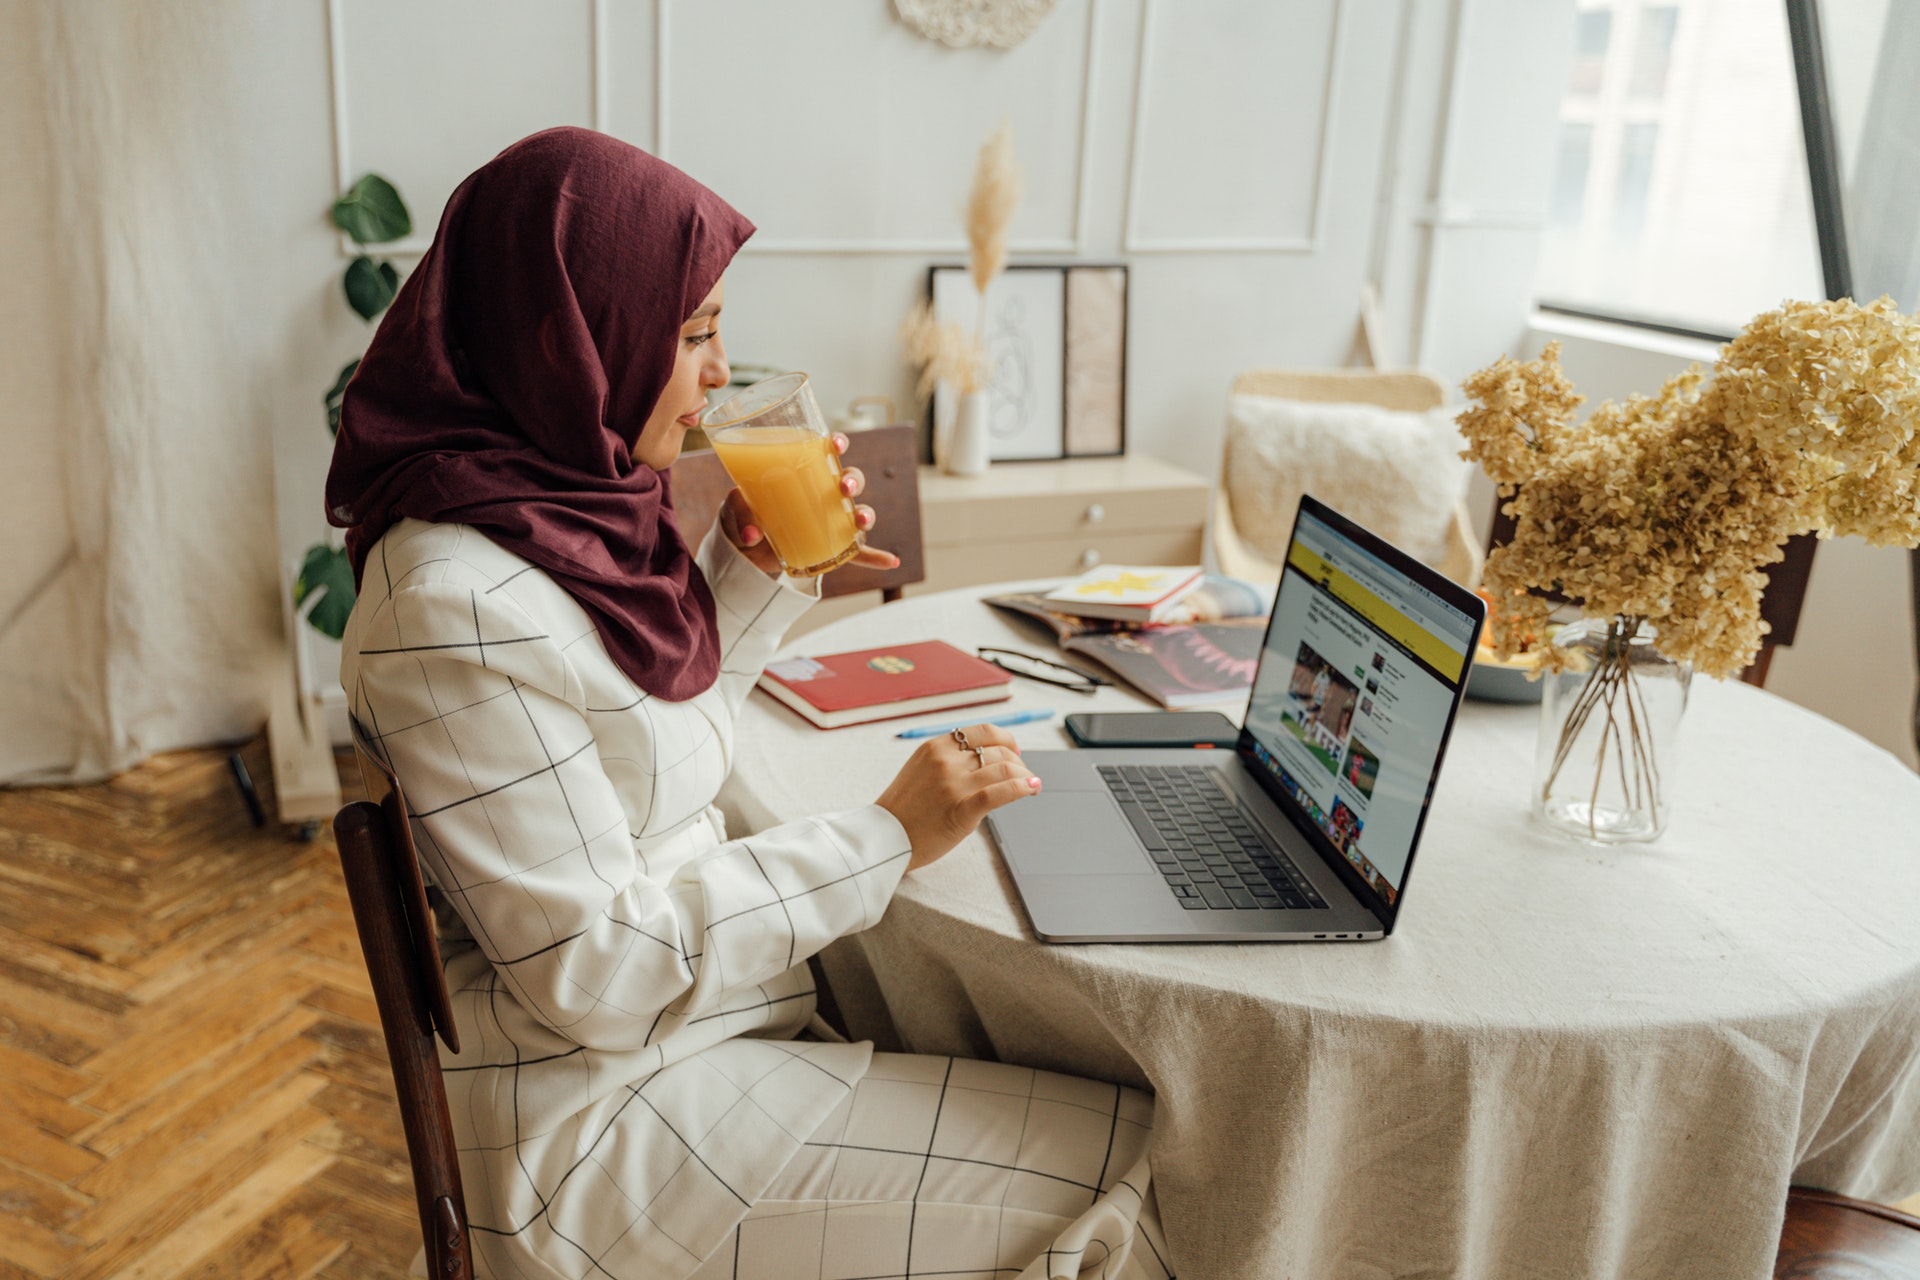 Woman in Hijab using a Laptop for online dating